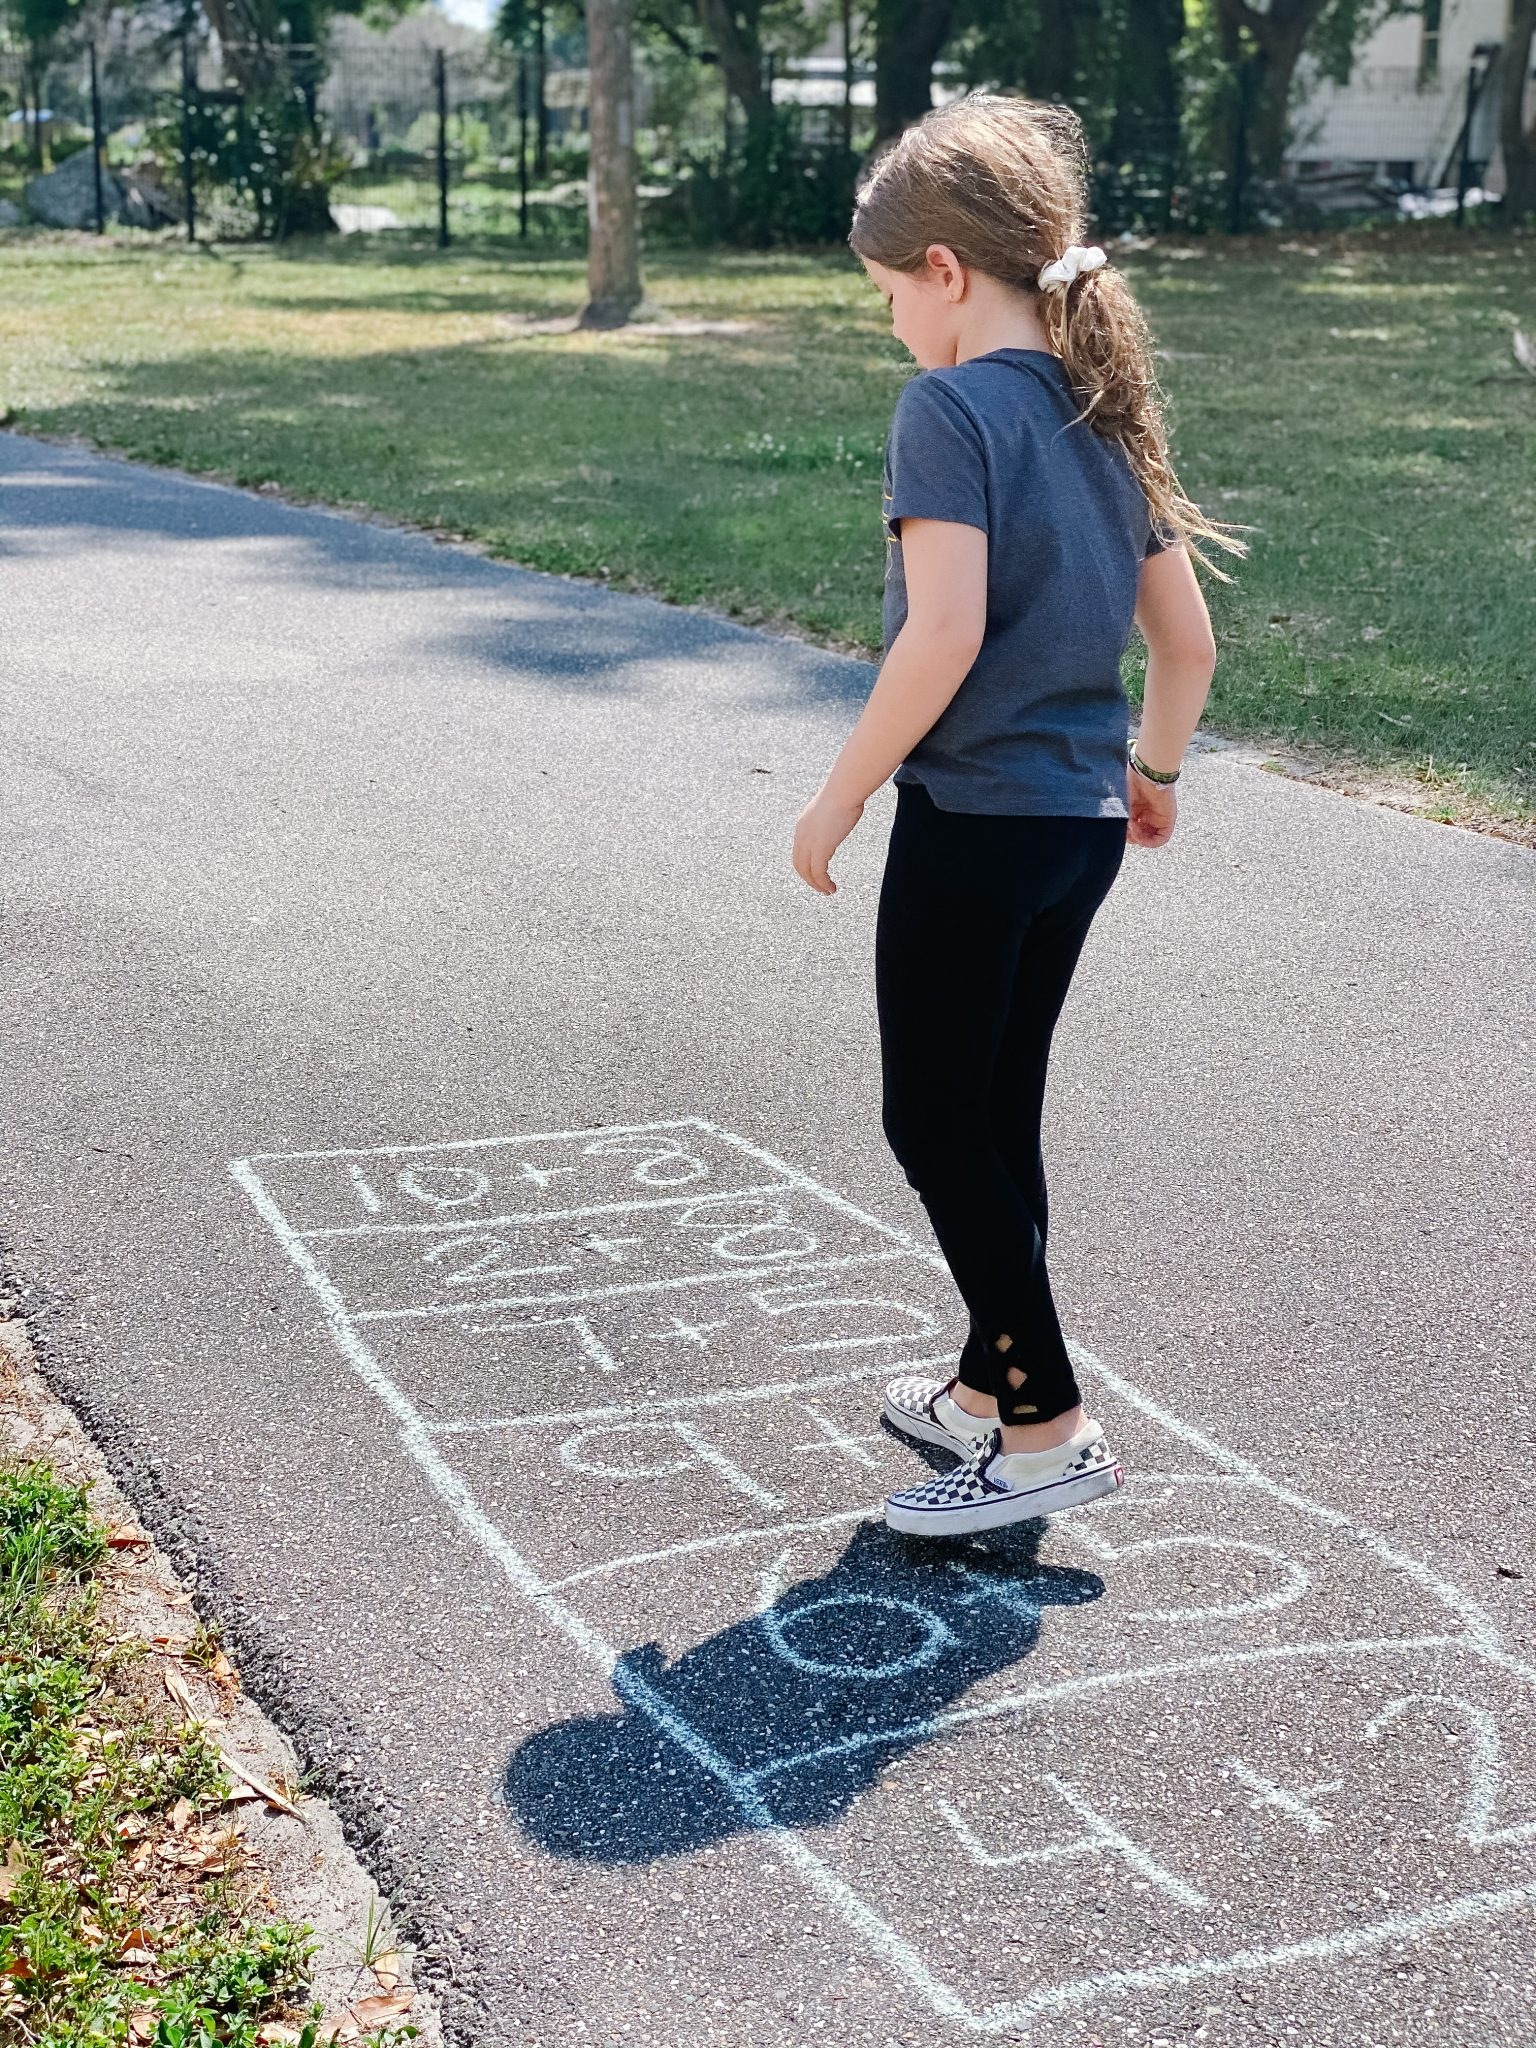 hopscotch math - learning with sidewalk chalk